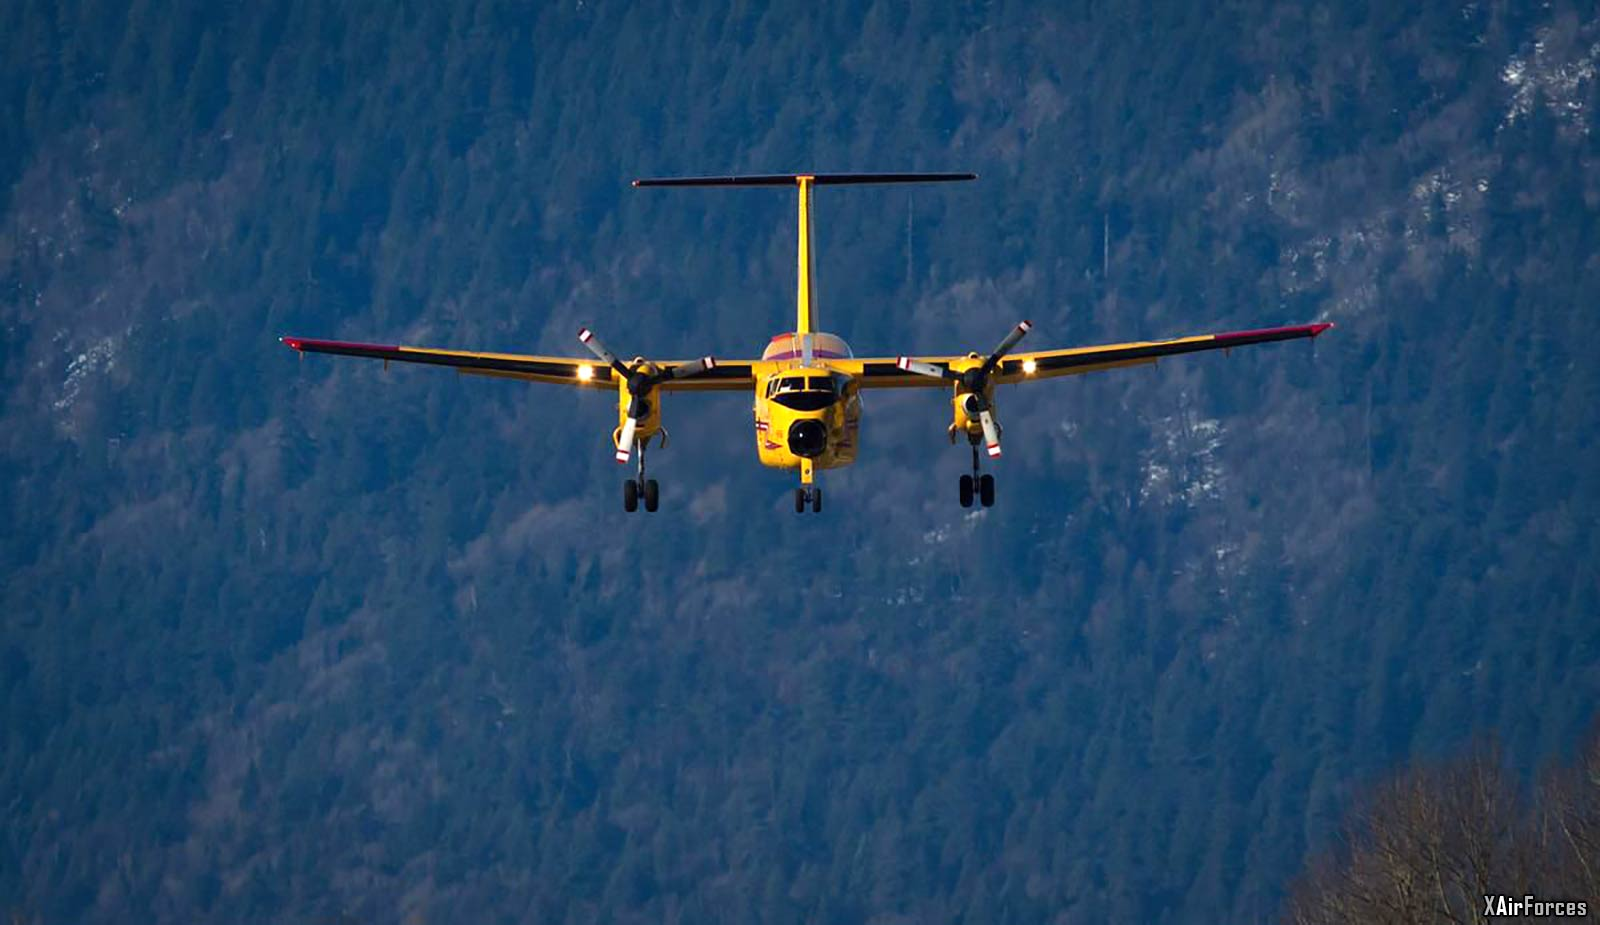 A Canadian Forces CC-115 Buffalo aircraft prepares to land at Chilliwack Airport